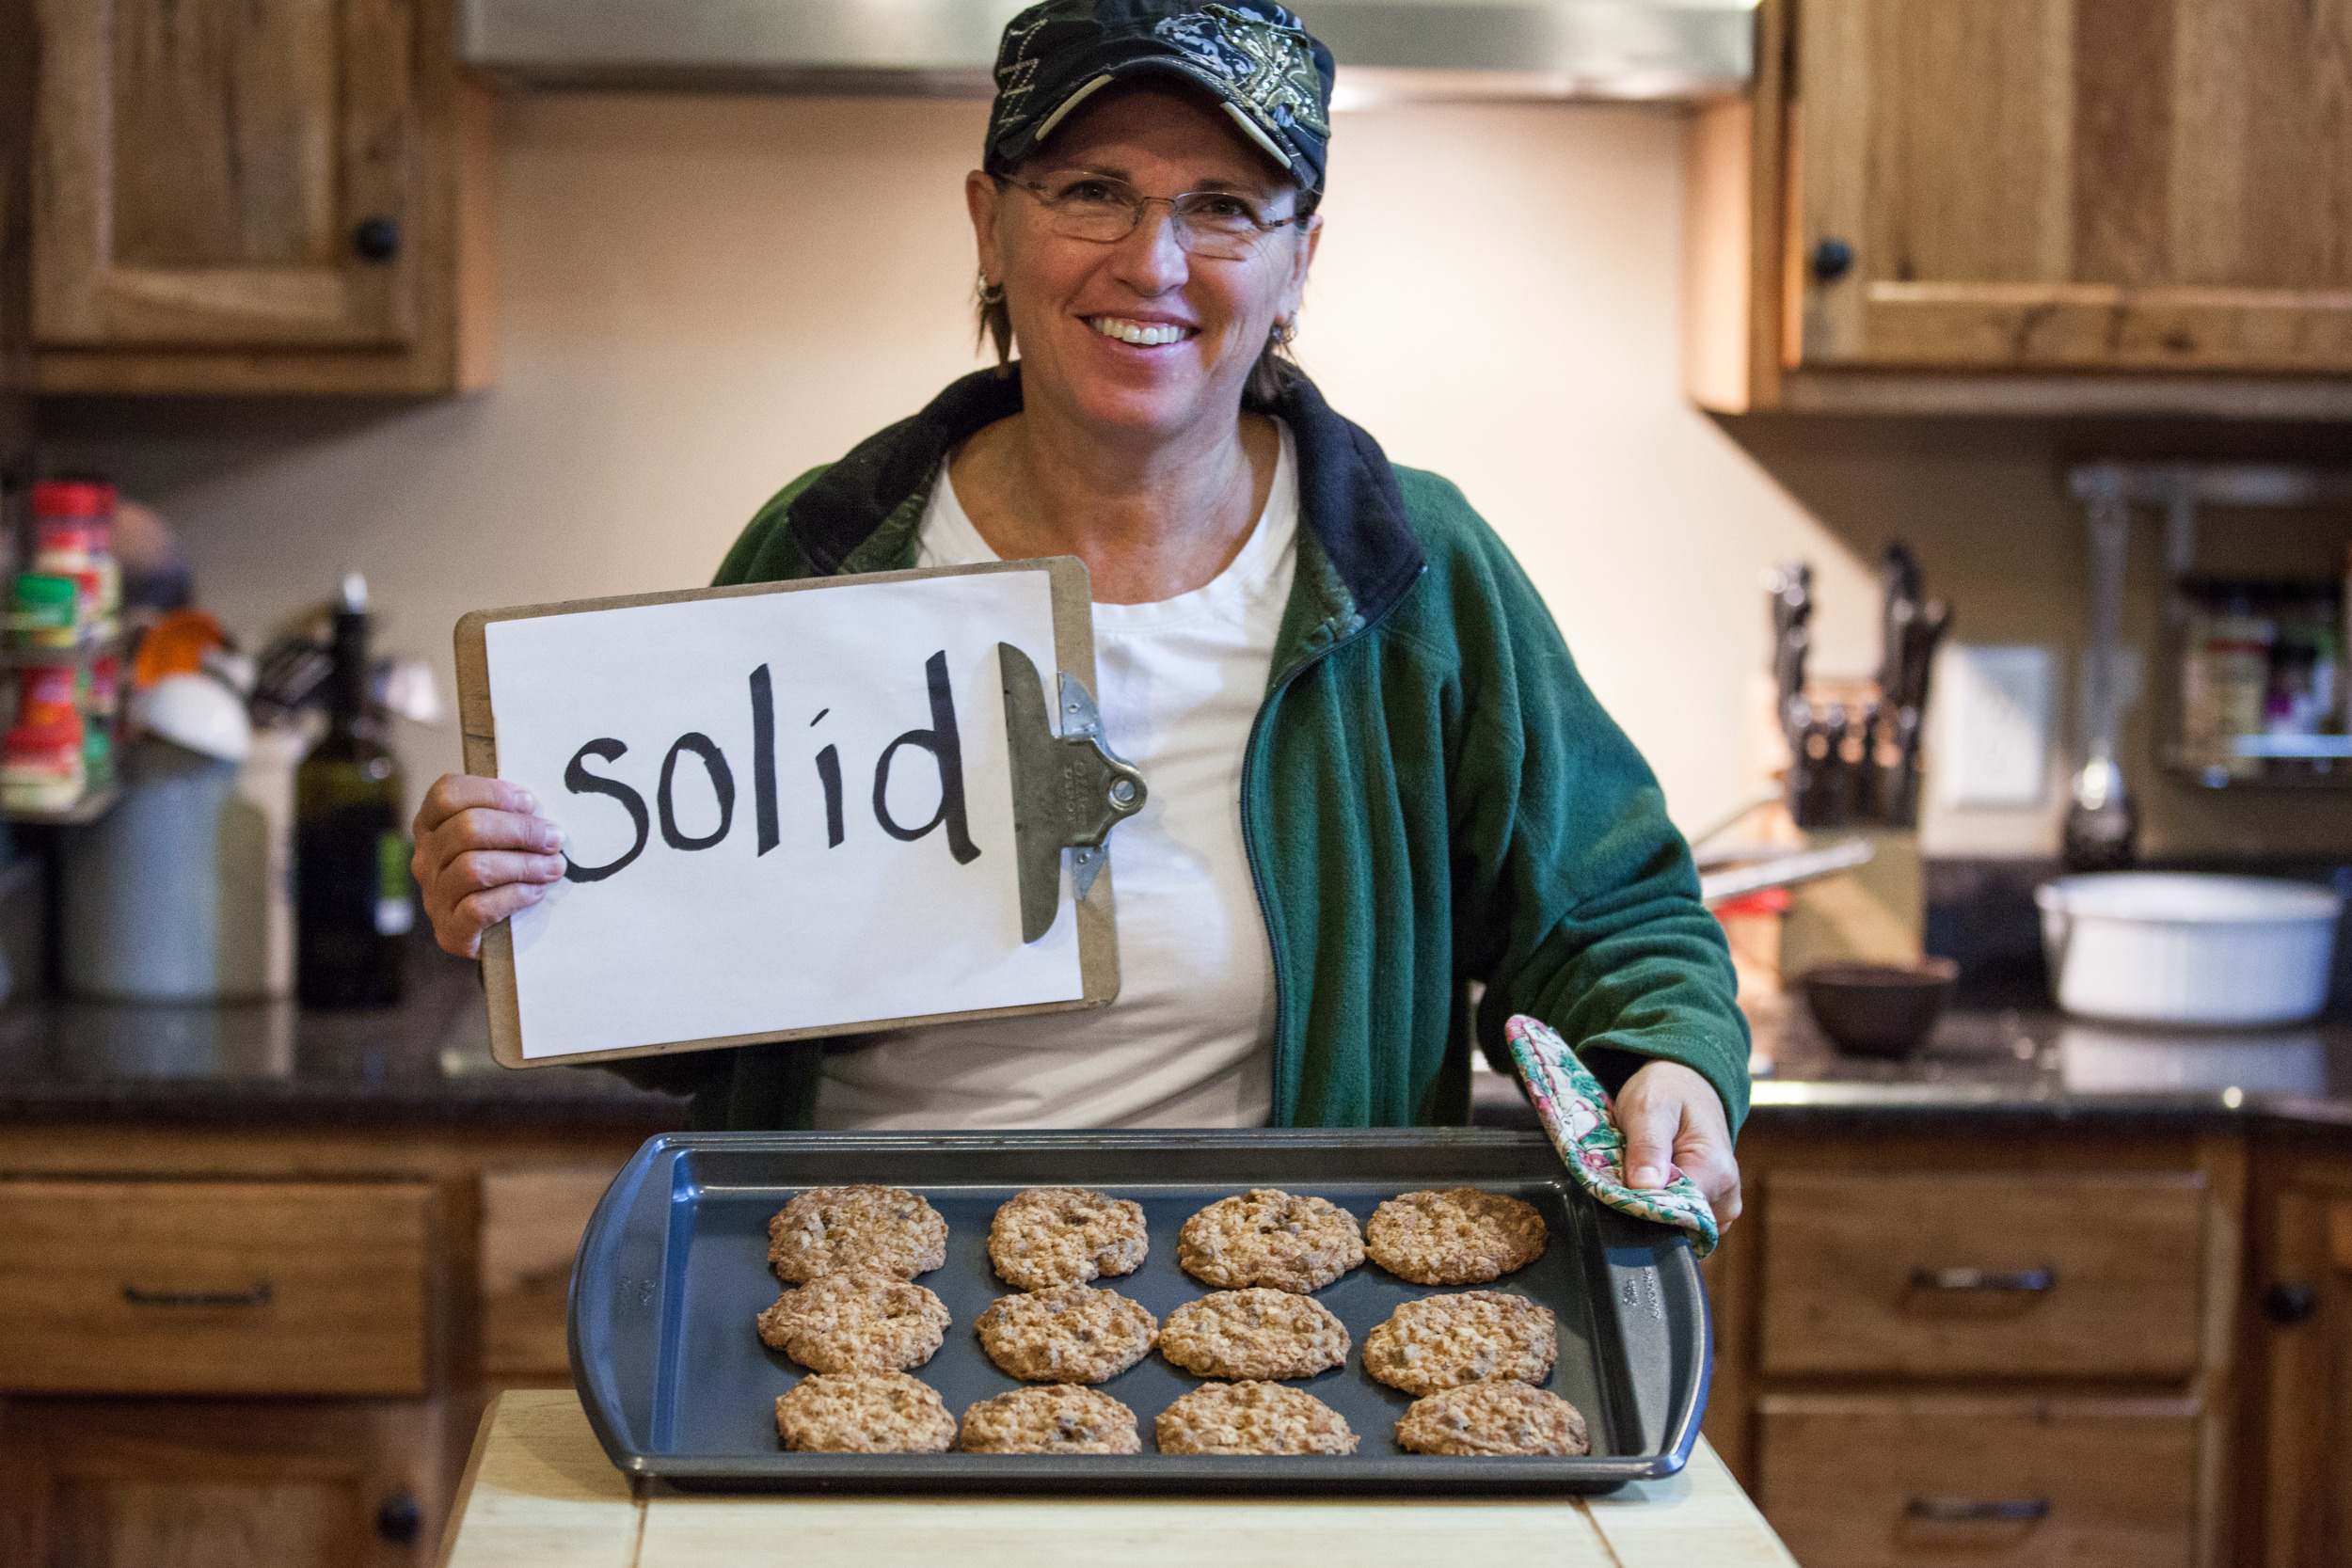 Woman holding a sign that says solid while also holding a pan of cookies.